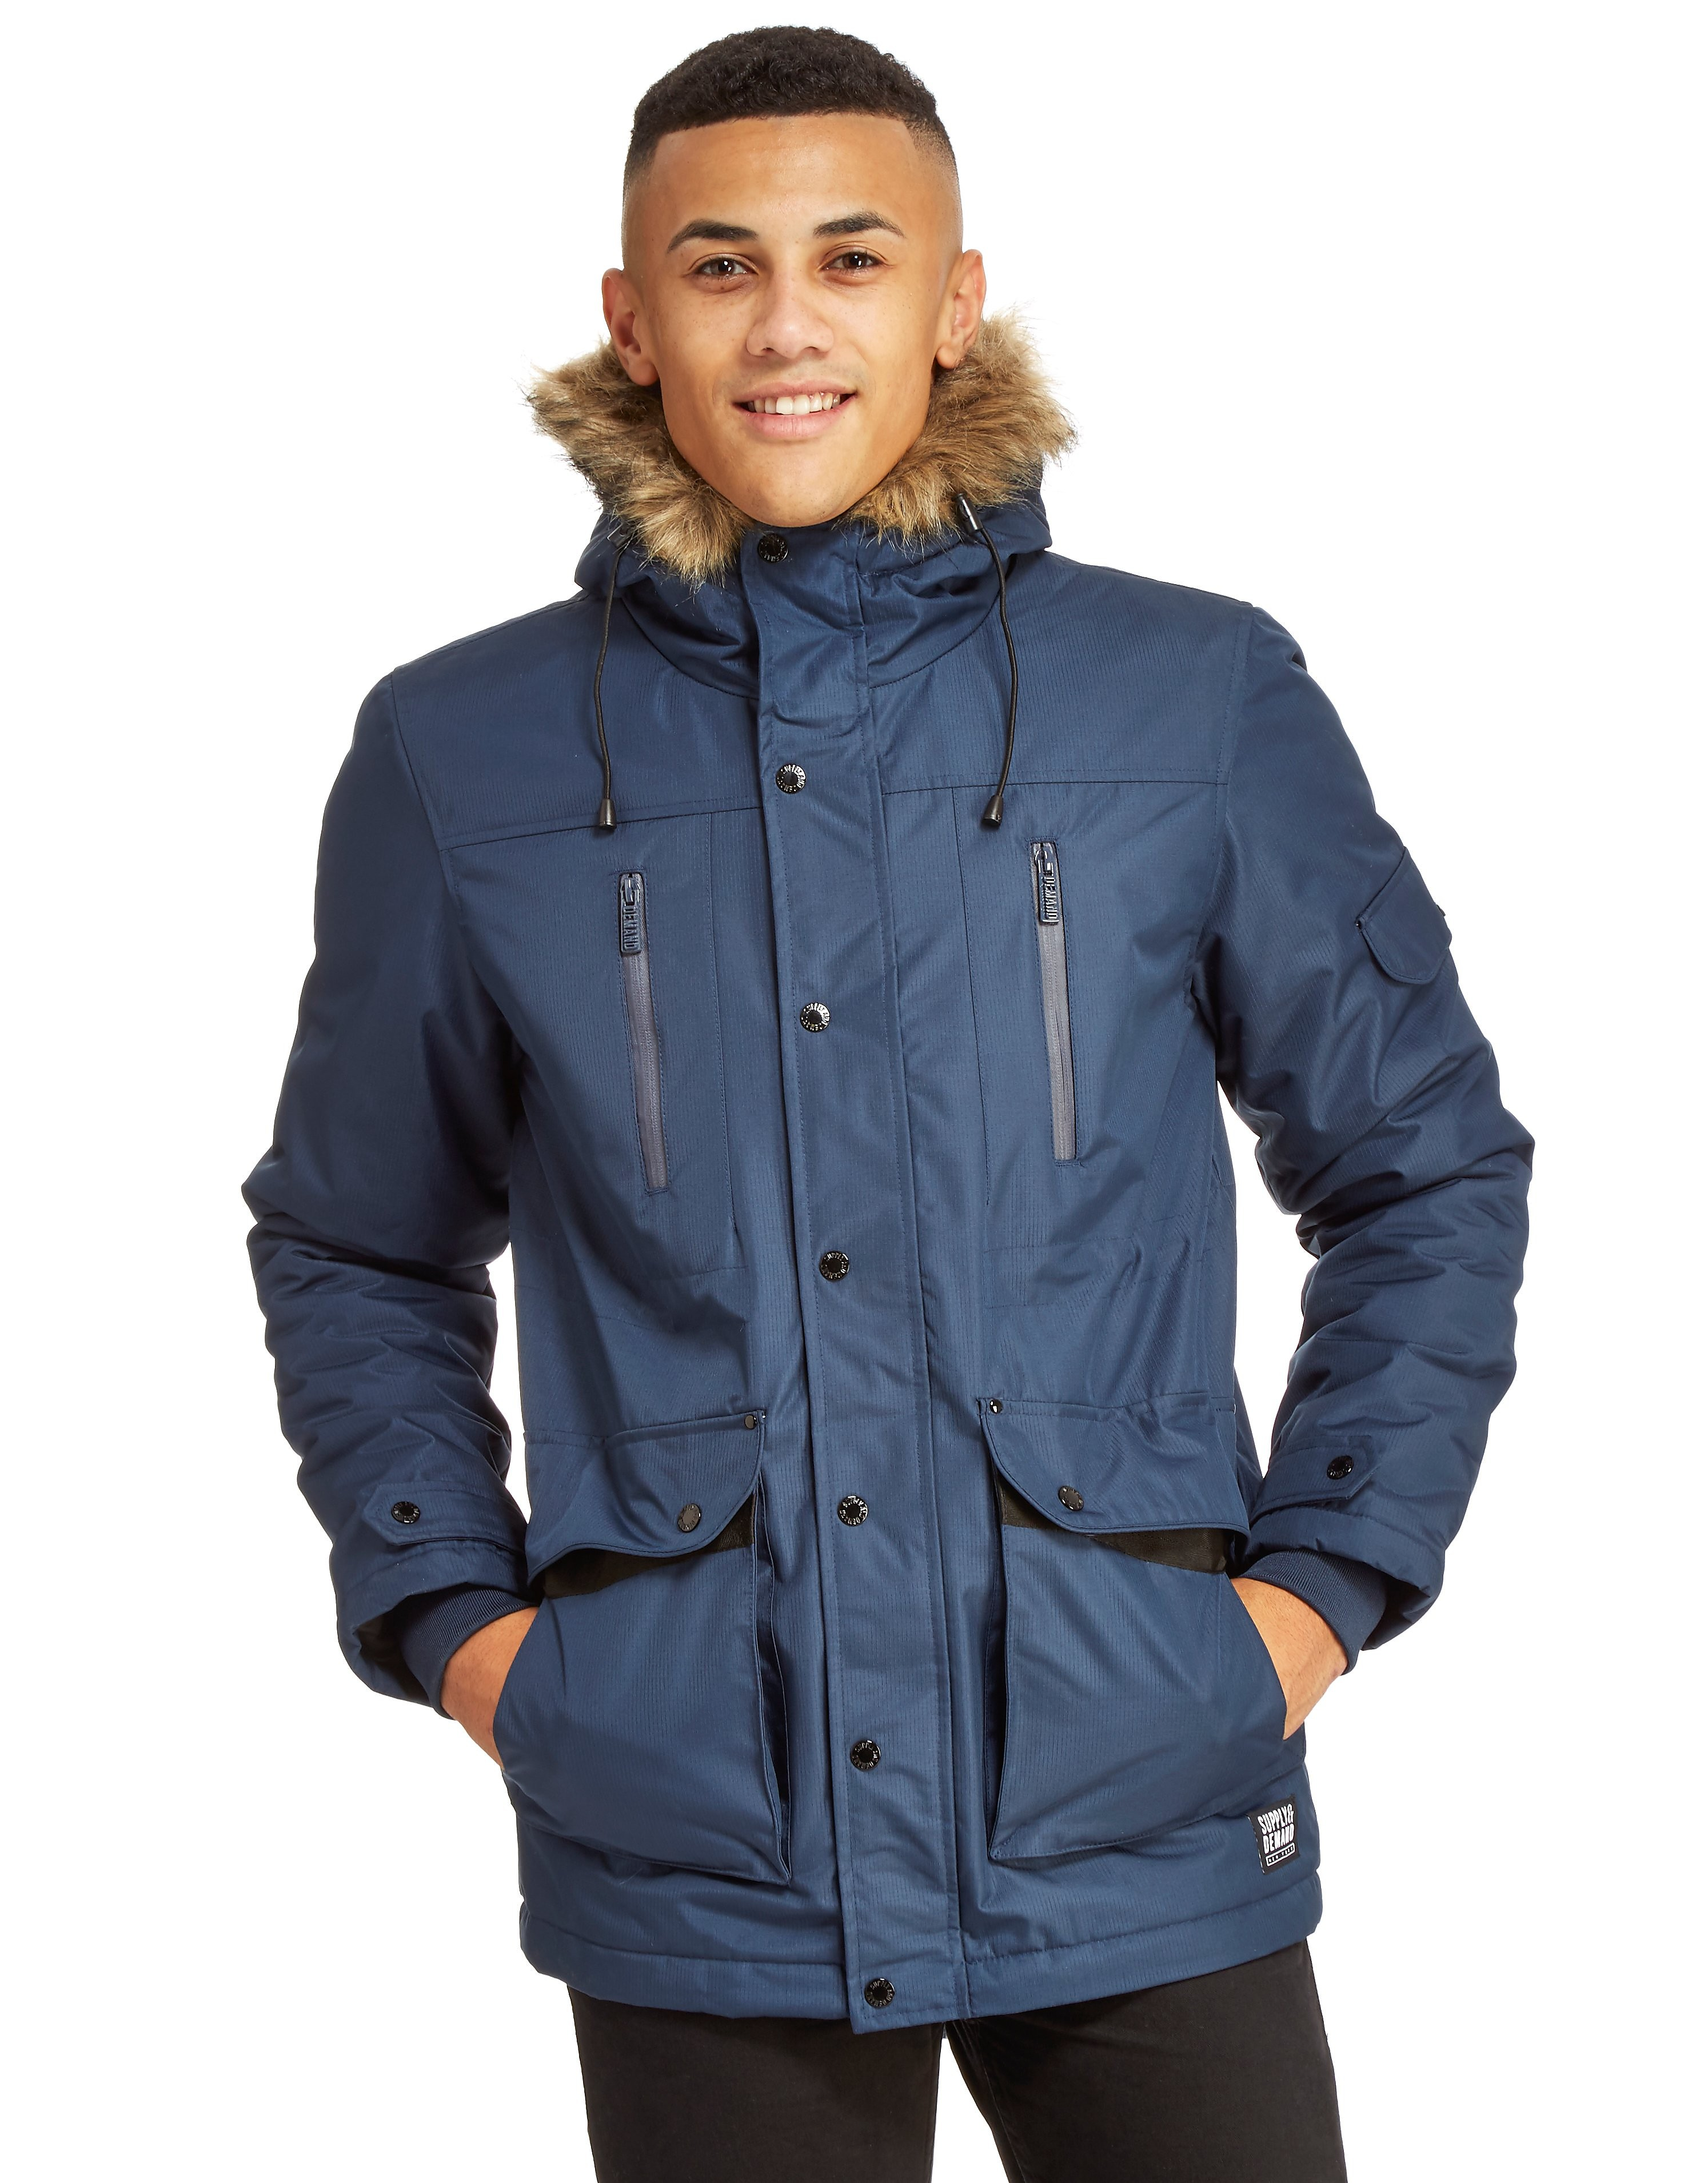 Supply & Demand Parka Jacket - Only at JD, Navy blue